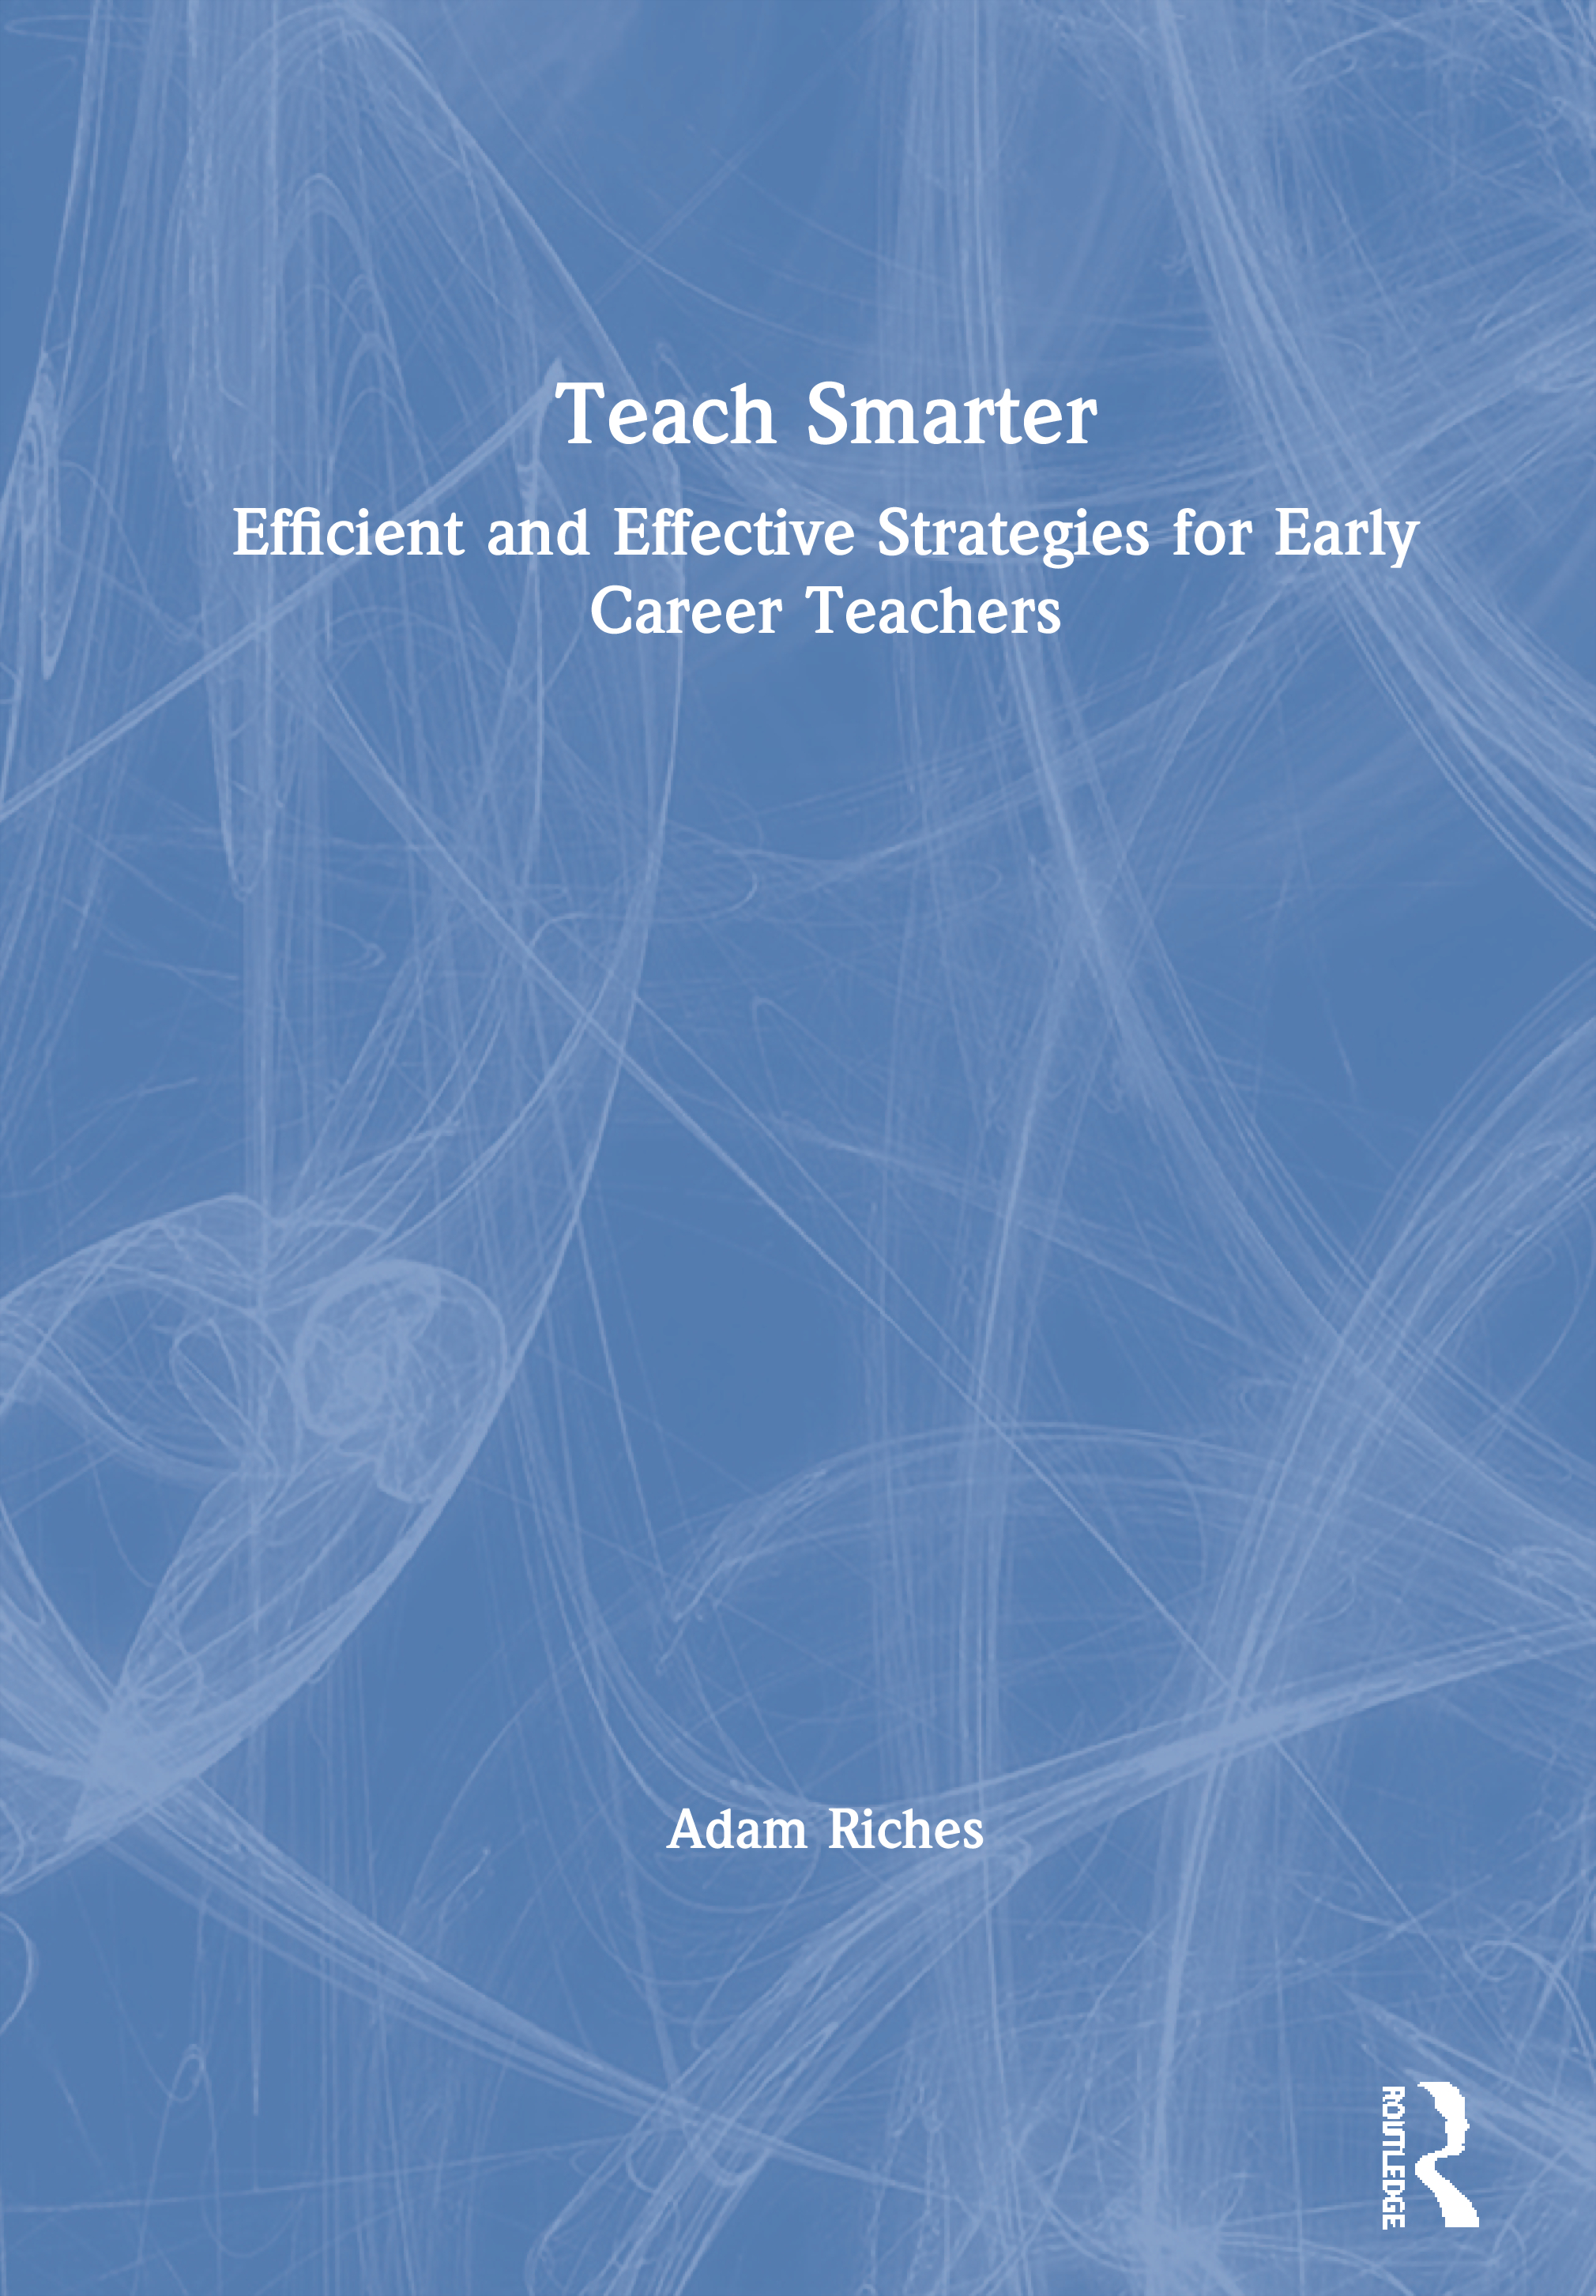 Teach Smarter: Efficient and Effective Strategies for Early Career Teachers book cover